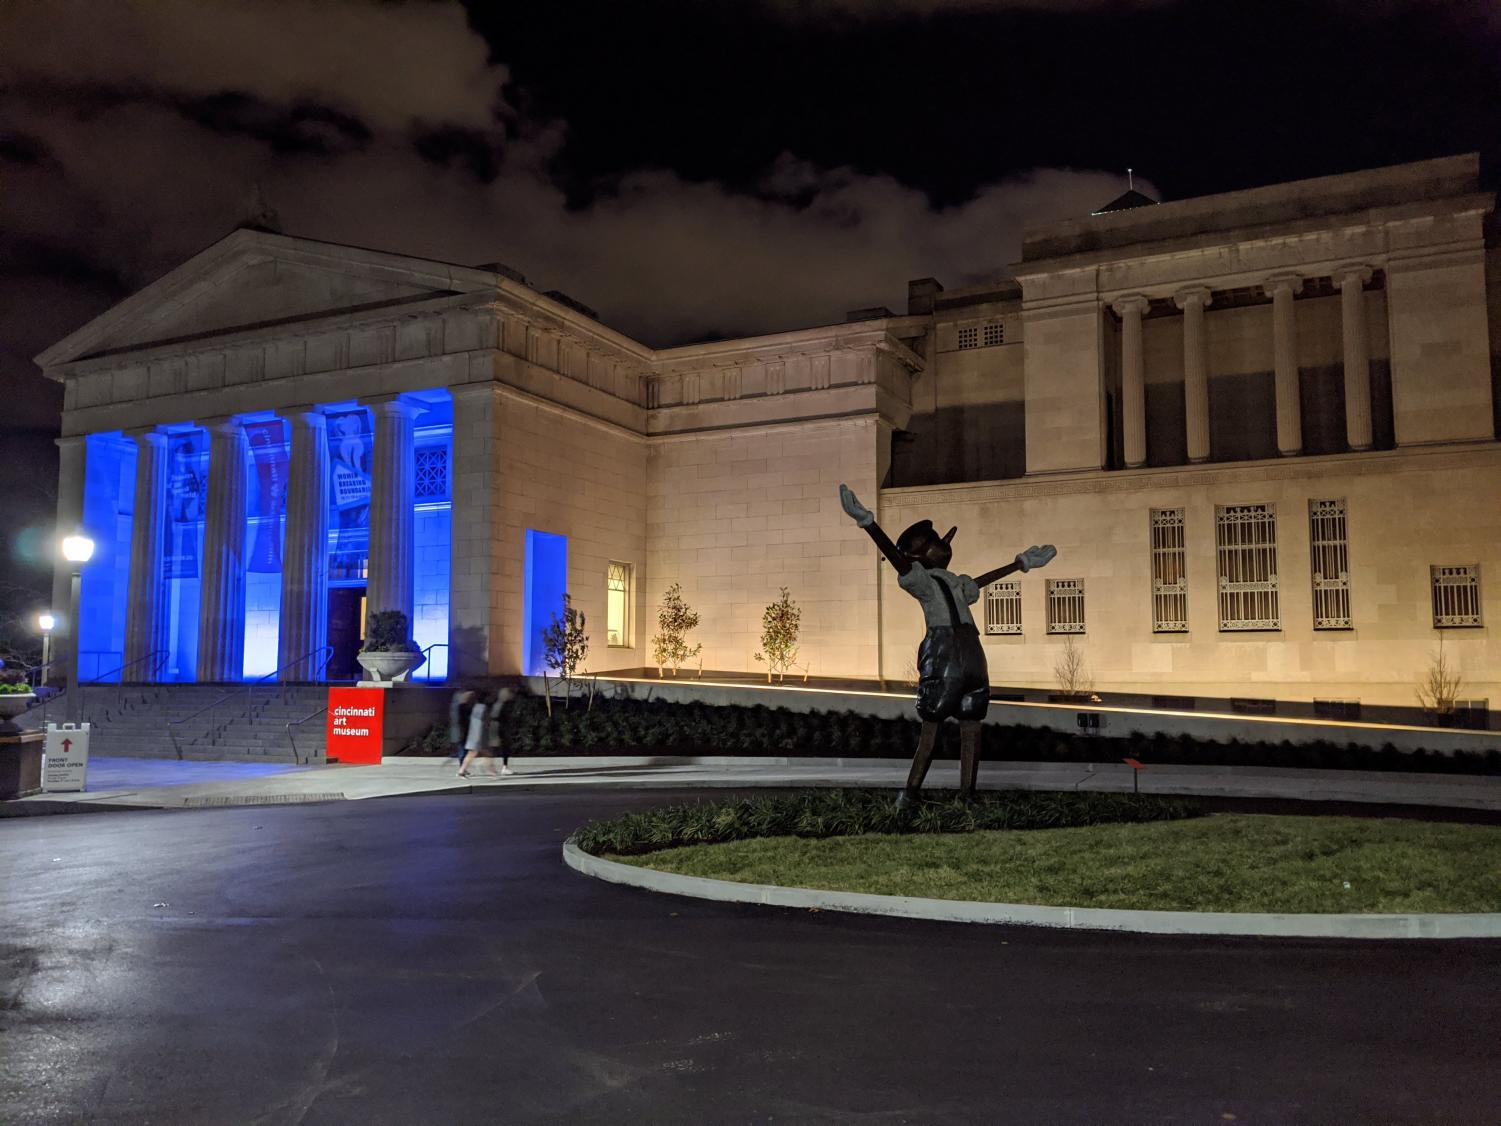 The Cincinnati Art Museum's front entrance ramp stands illuminated at an Art After Dark event. Construction on the ramp began in late February, and it was officially unveiled on Oct. 17. The ramp is part of the museum's accessibility initiative. With the addition of this ramp, older patrons and patrons with physical disabilities no longer have to solely rely on the wheelchair-accessible access located at the back of the museum.